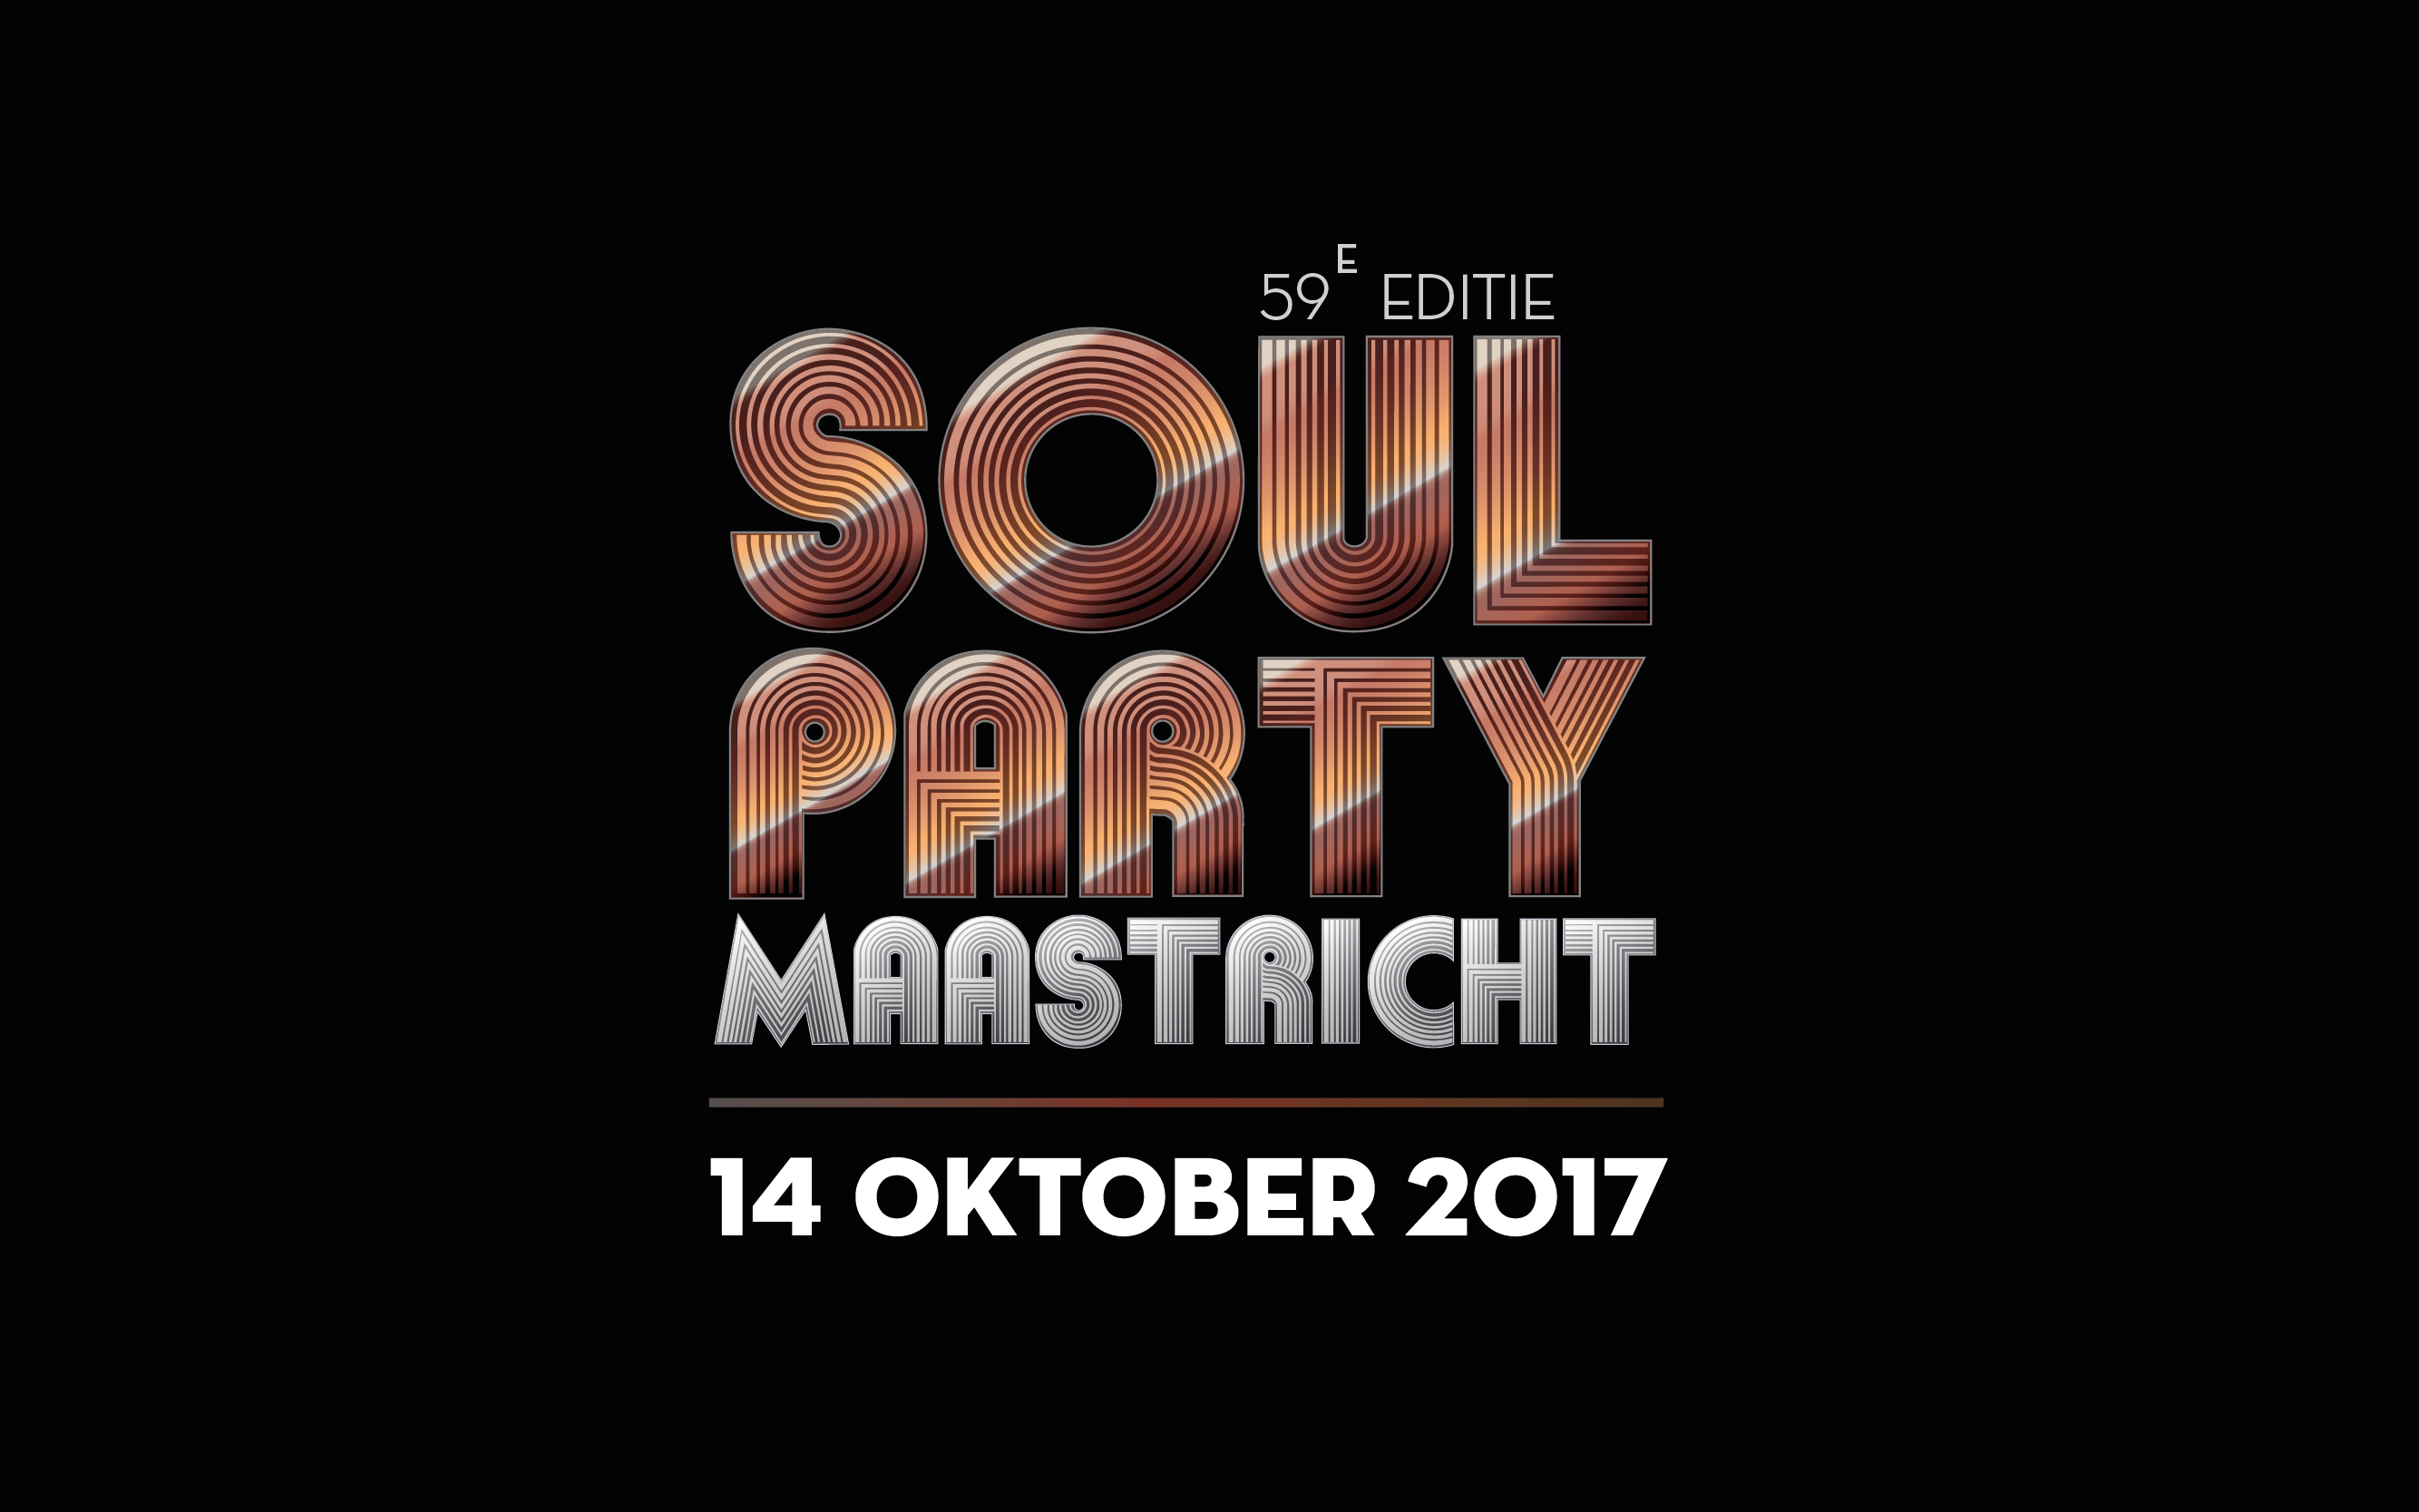 Soulparty 14 oktober 2017